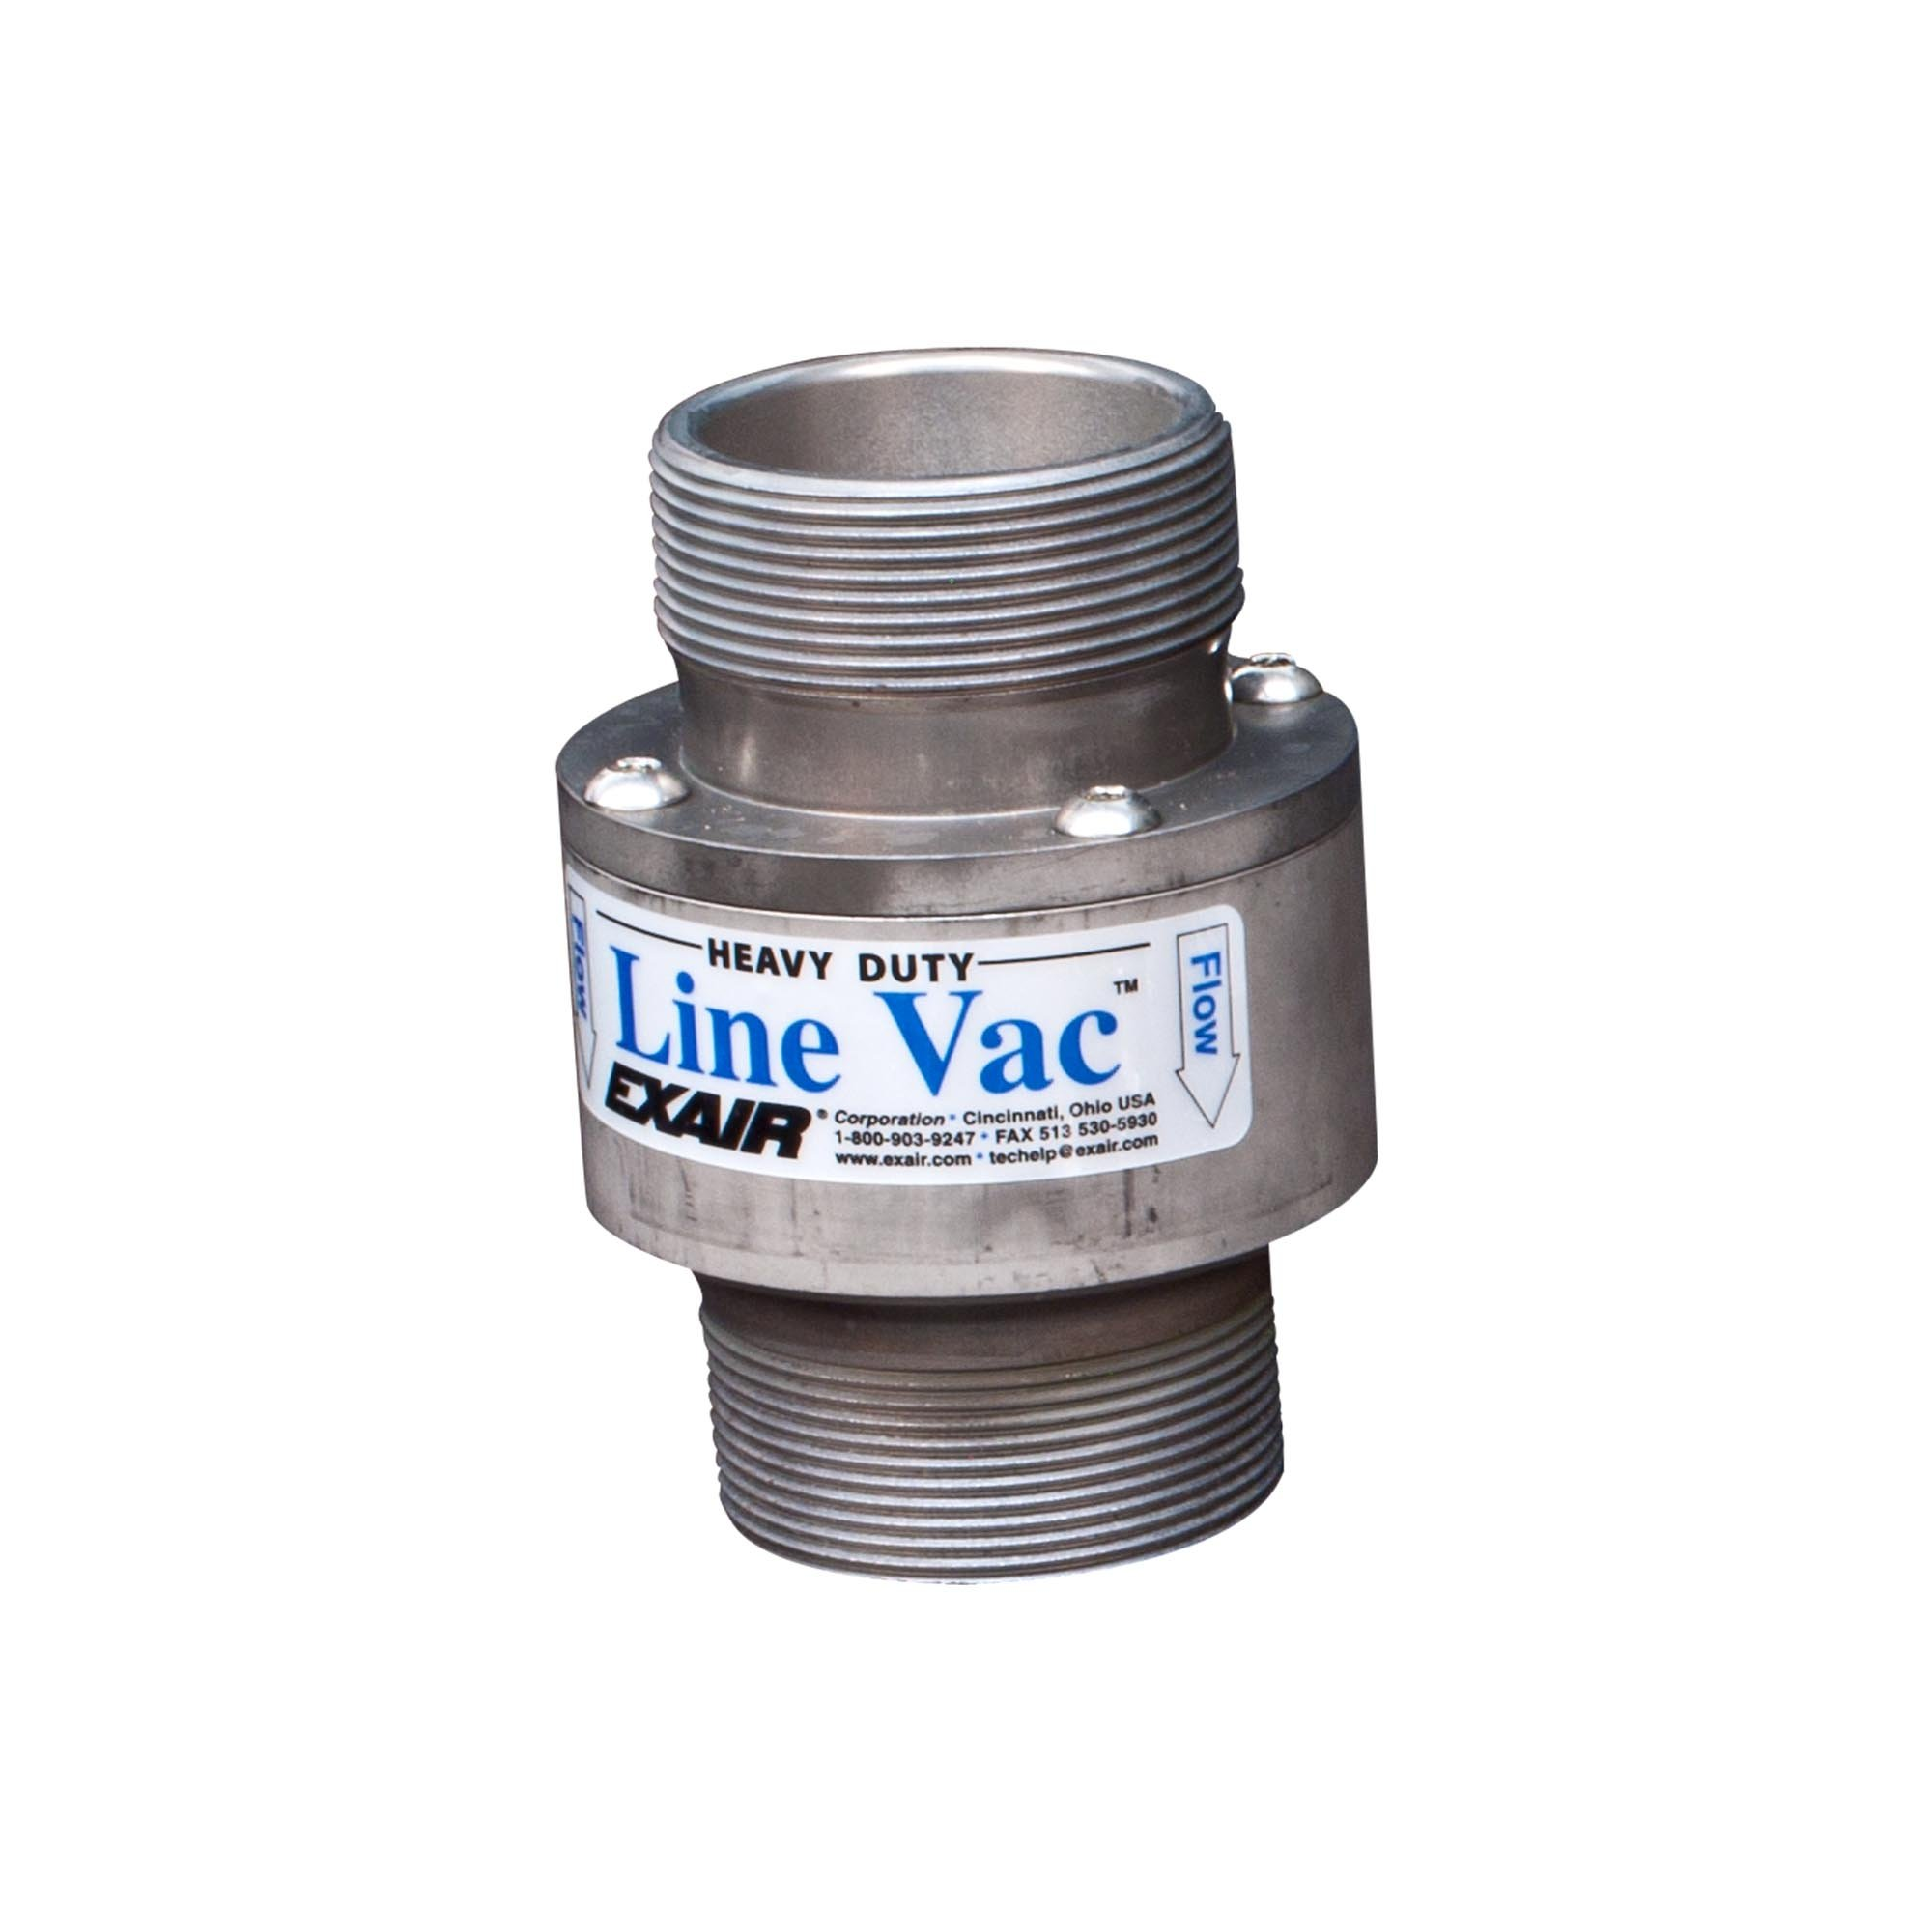 Model W151200 2 NPT Heavy Duty Threaded Line Vac